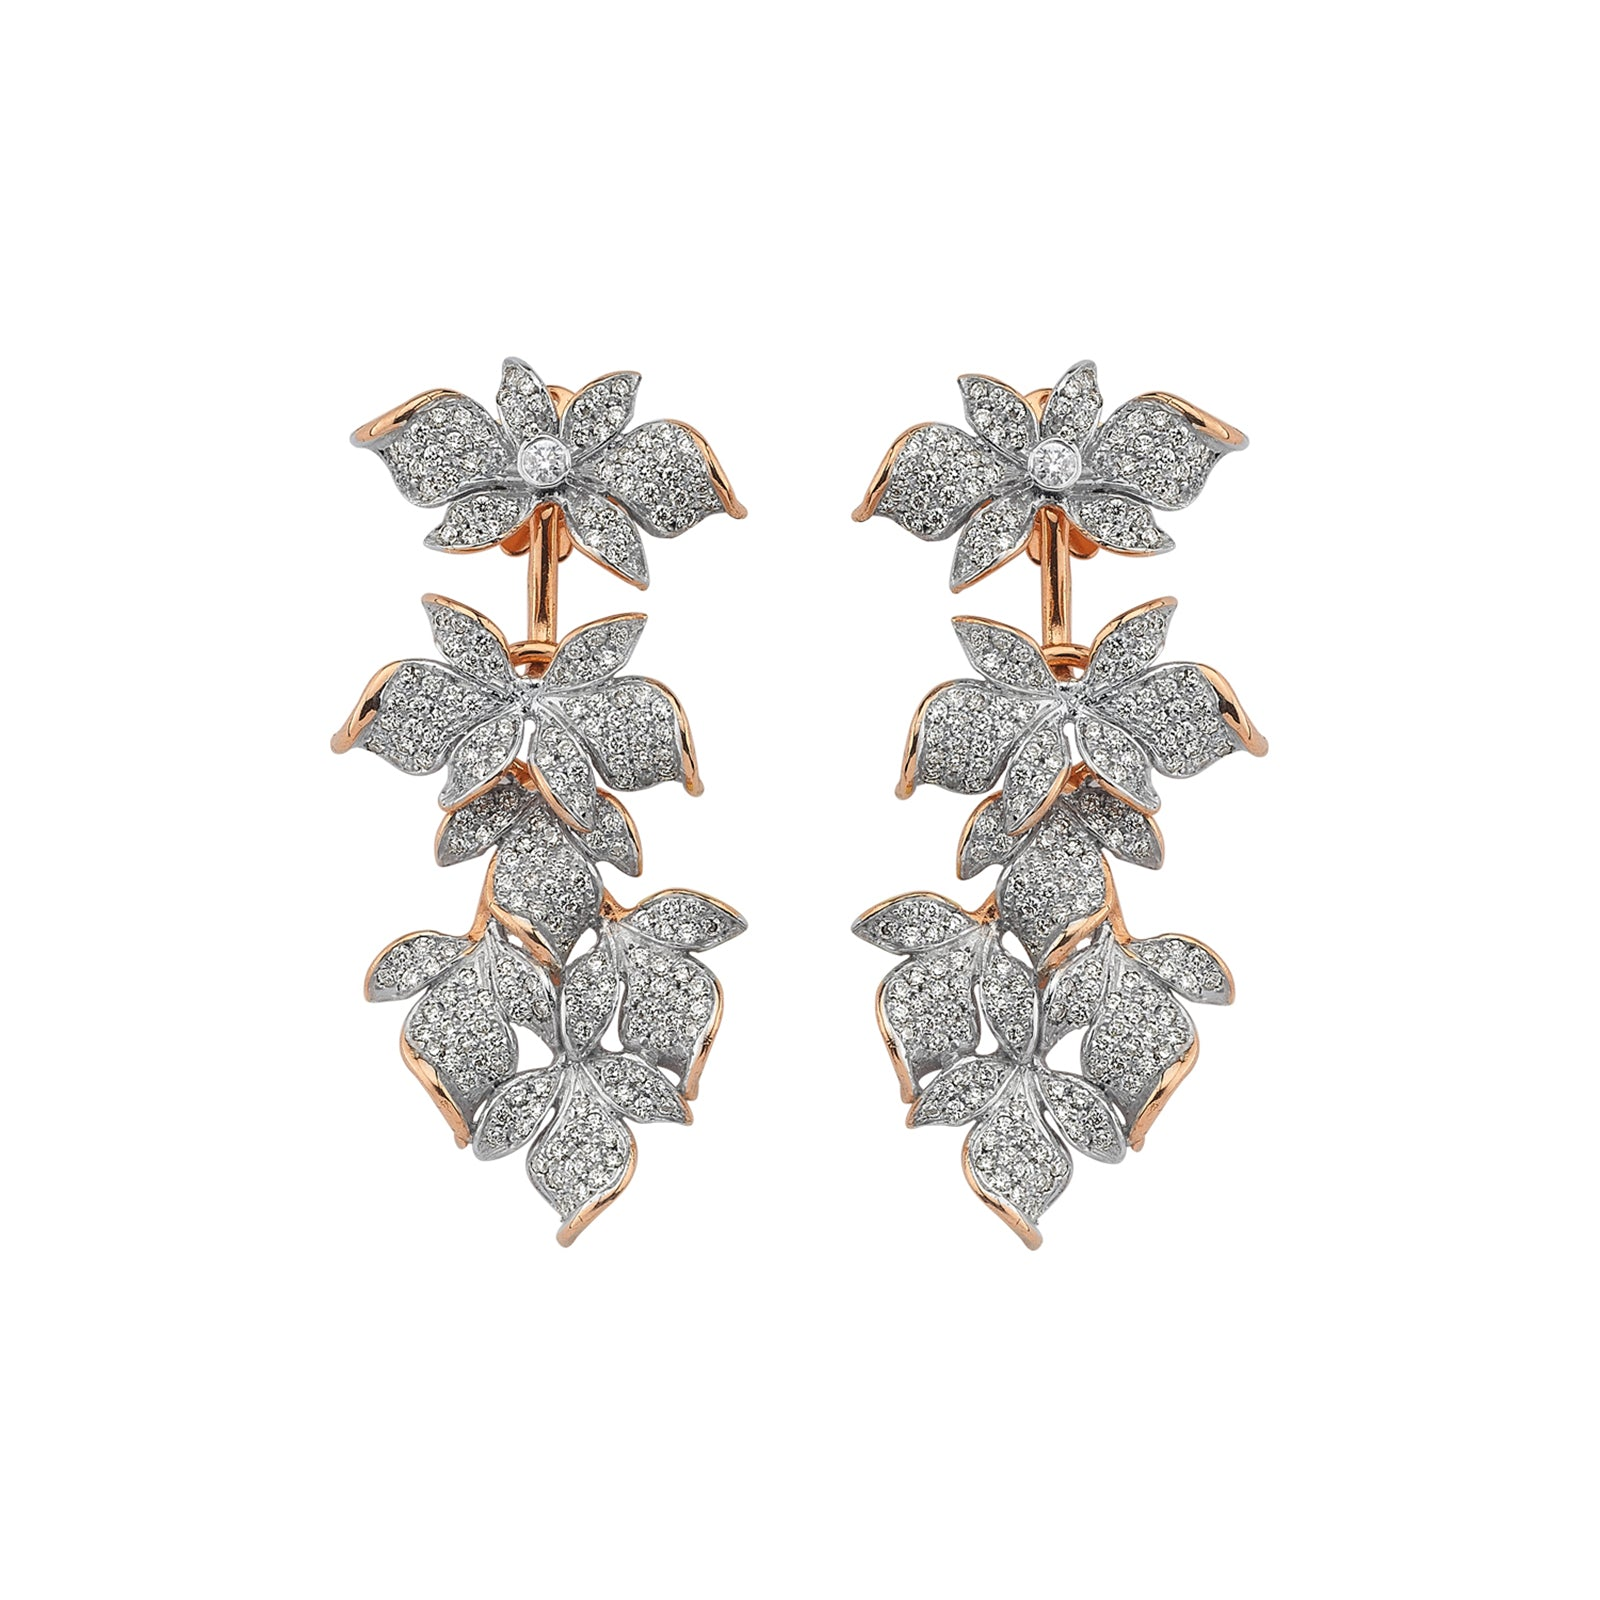 Aida Bergsen Ivy Earrings - White Diamond - Earrings - Broken English Jewelry